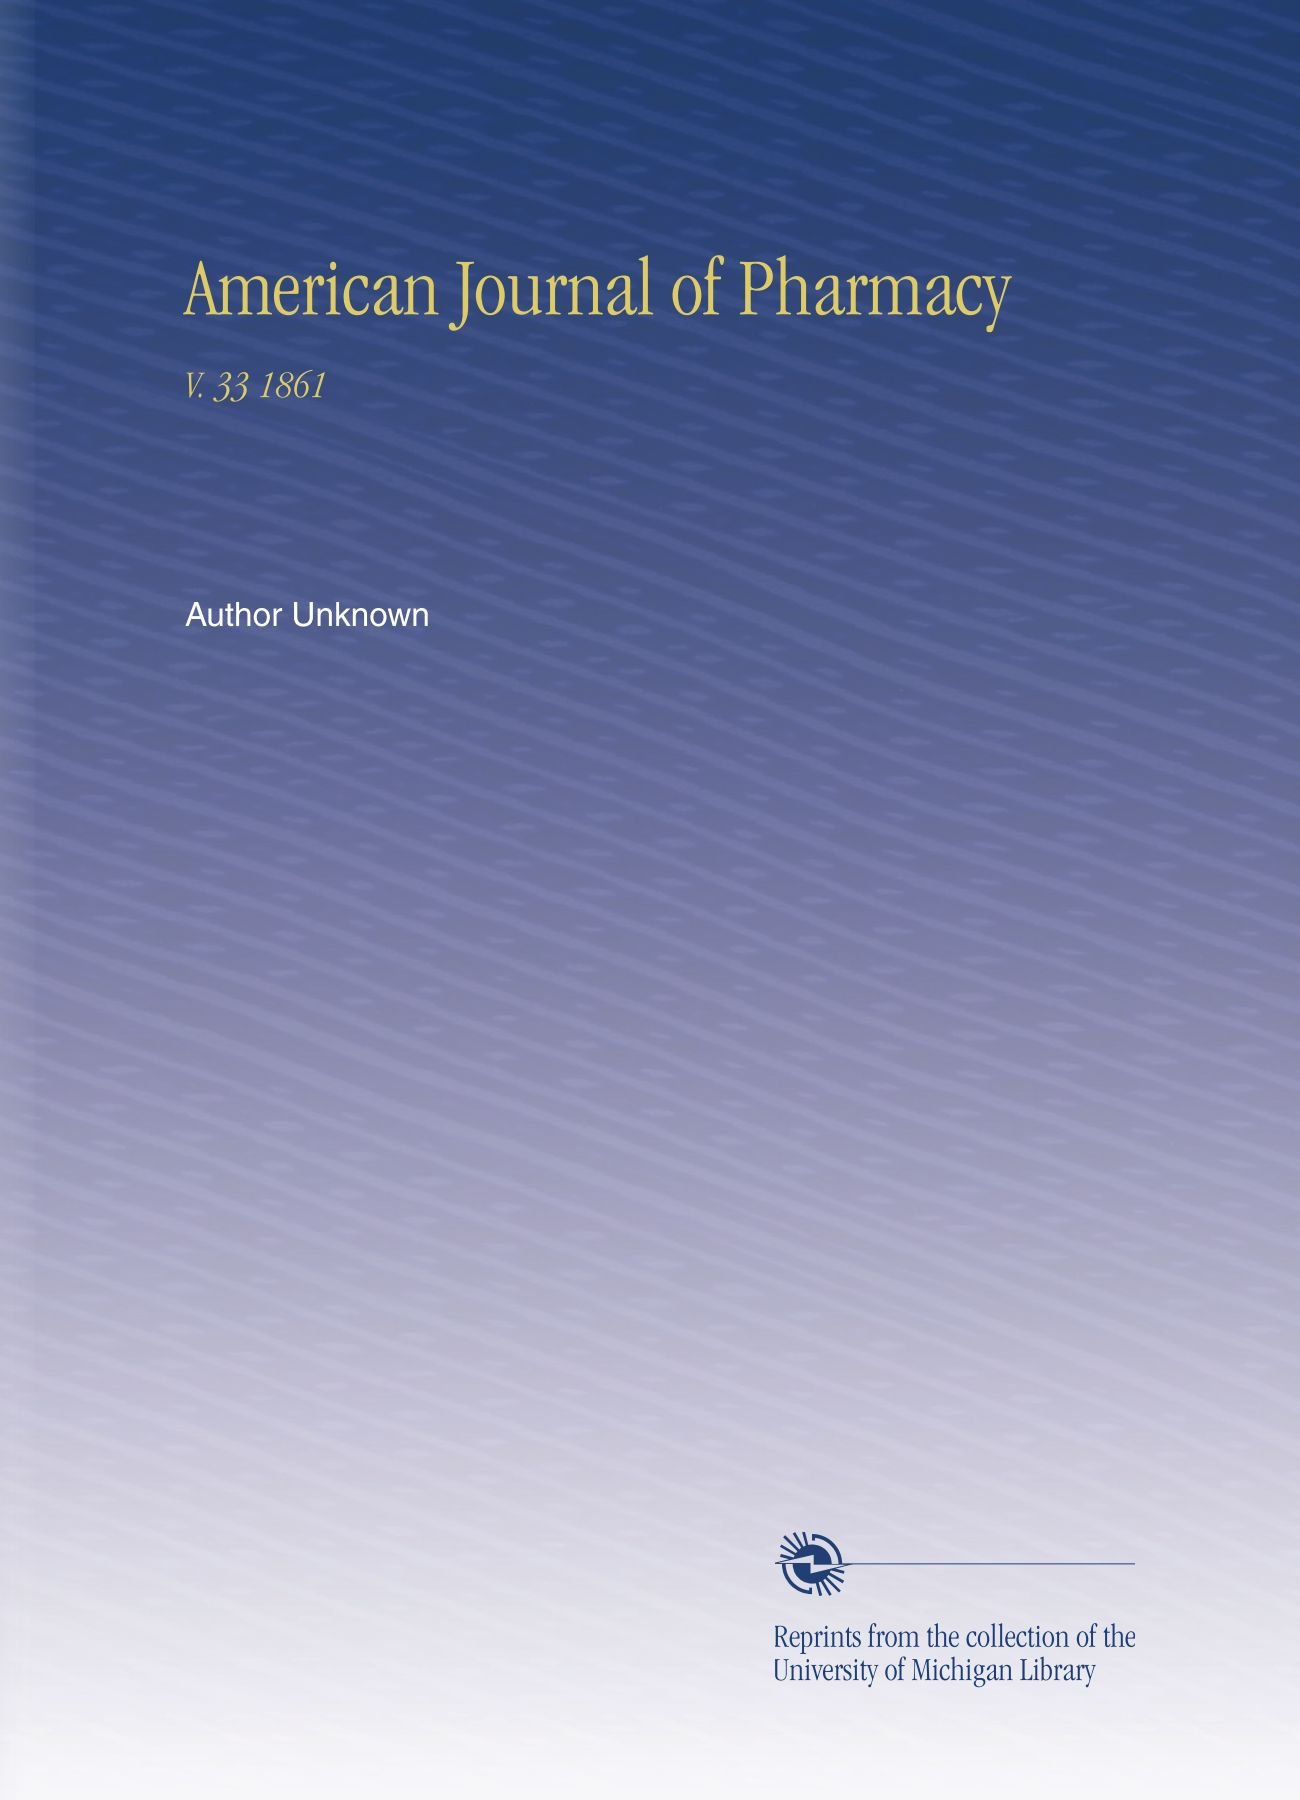 American Journal of Pharmacy: V. 33 1861 pdf